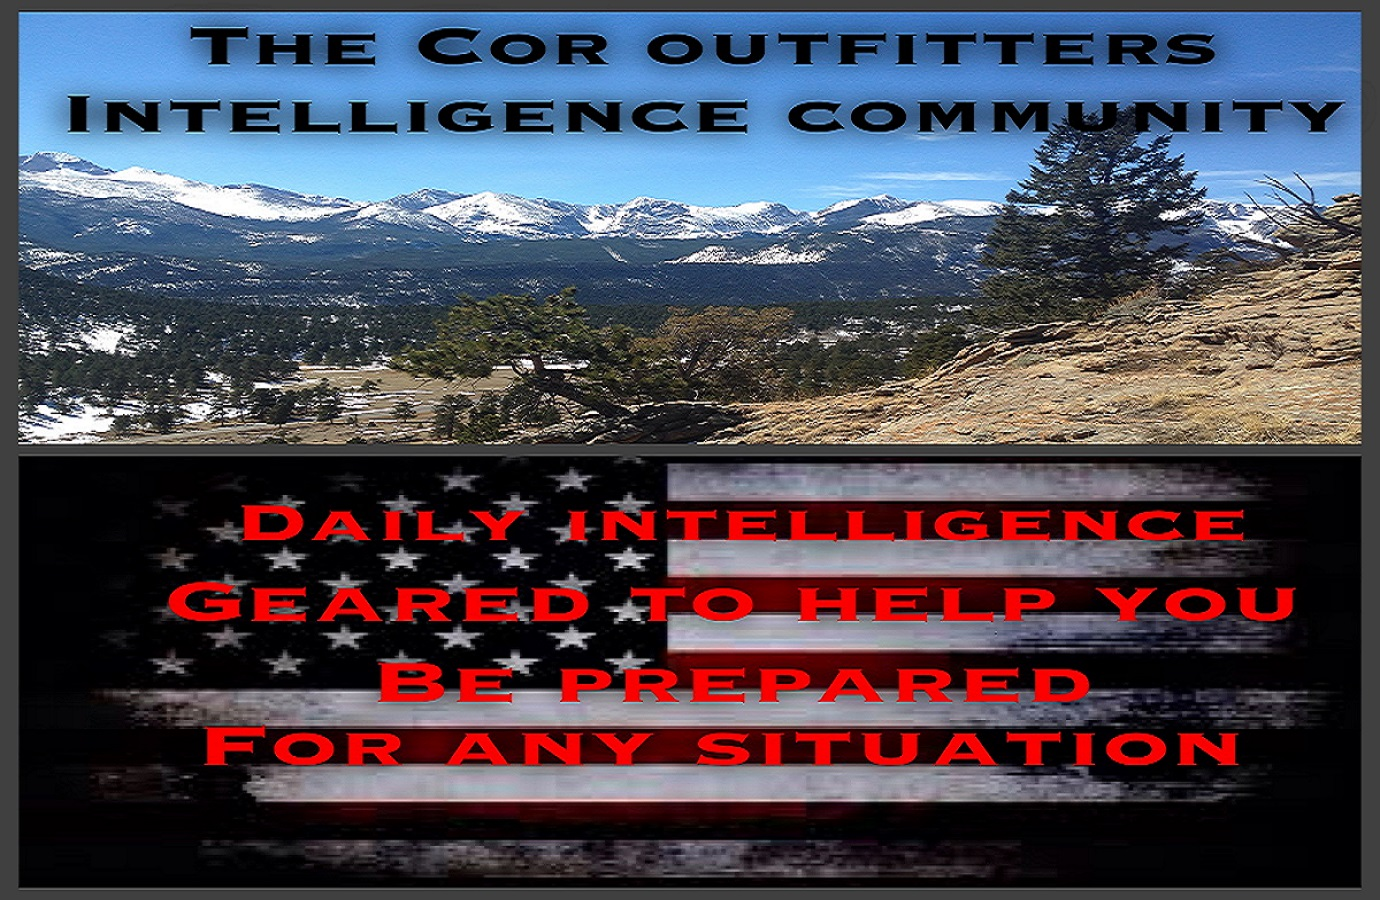 The Cor Outfitters Intelligence Community